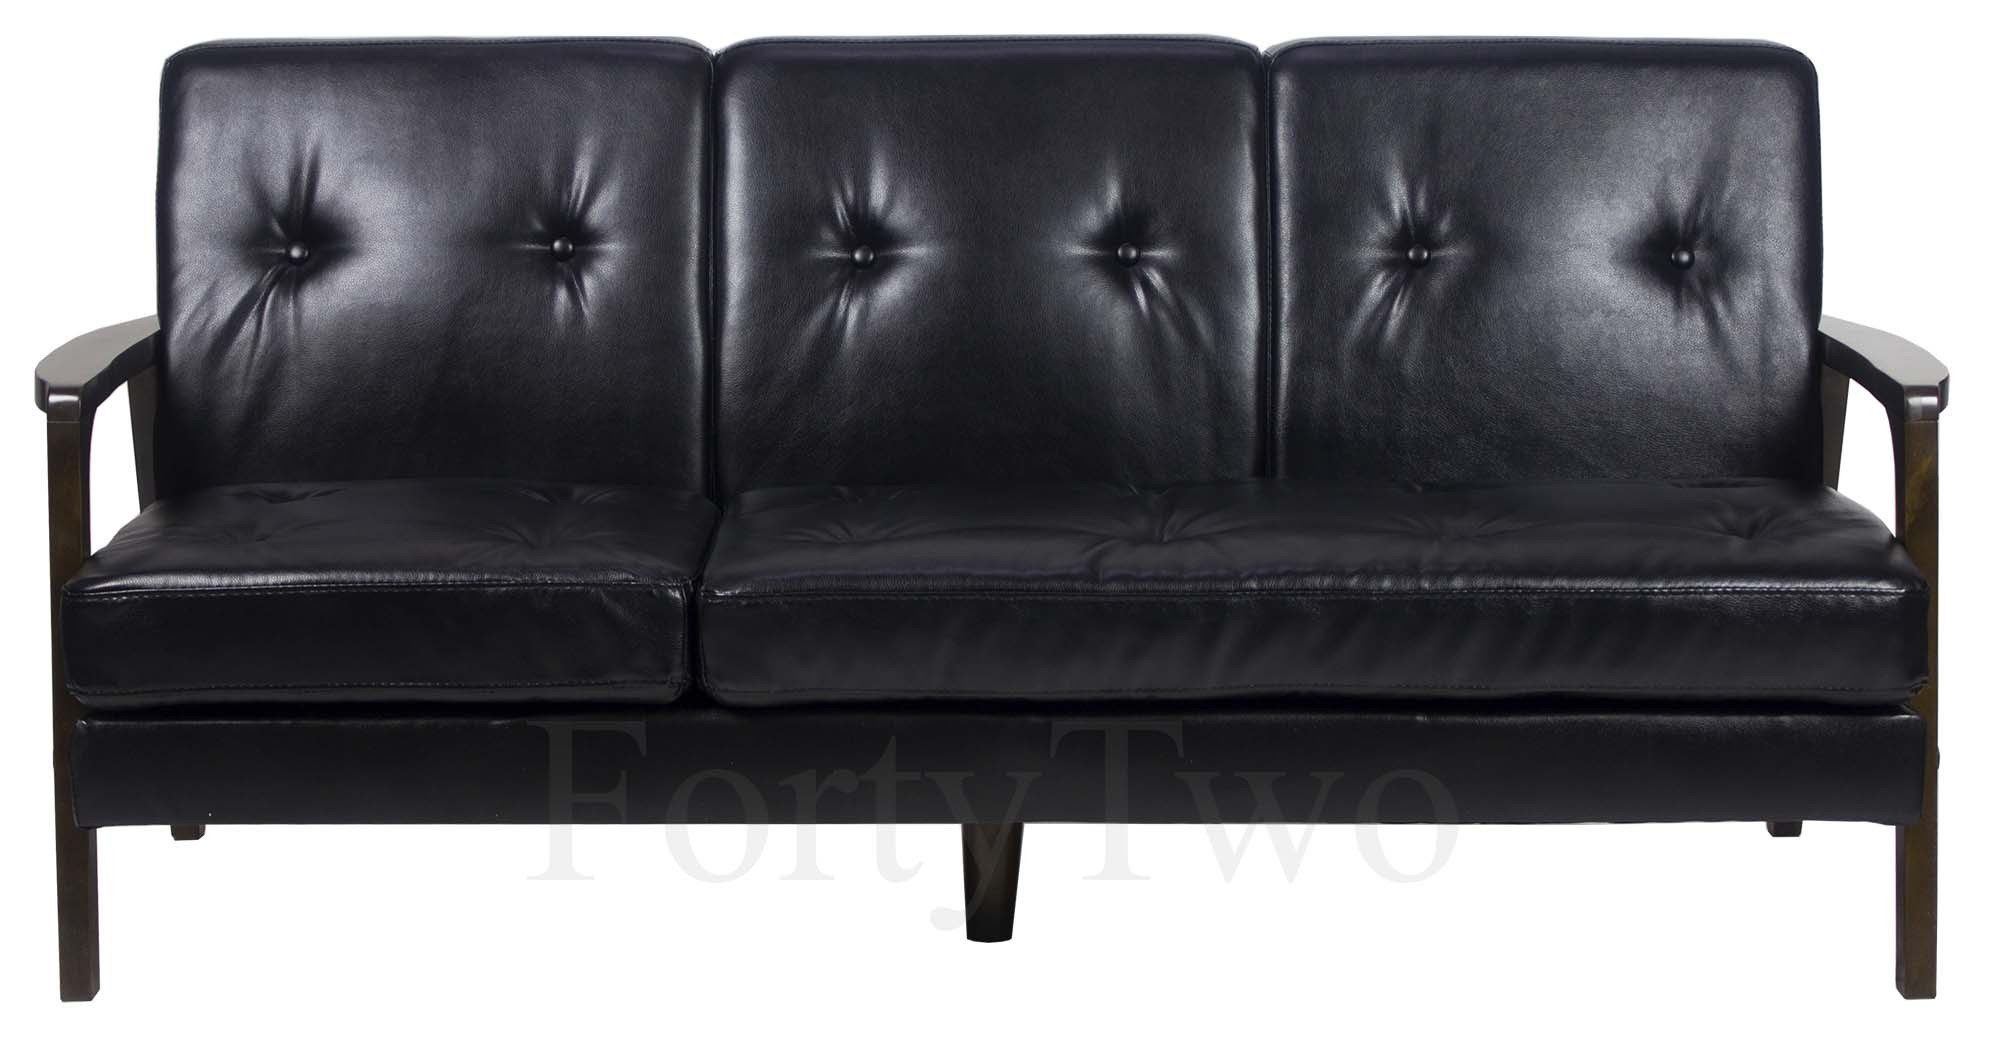 12 foot sofa black and gold pillows massage with at of